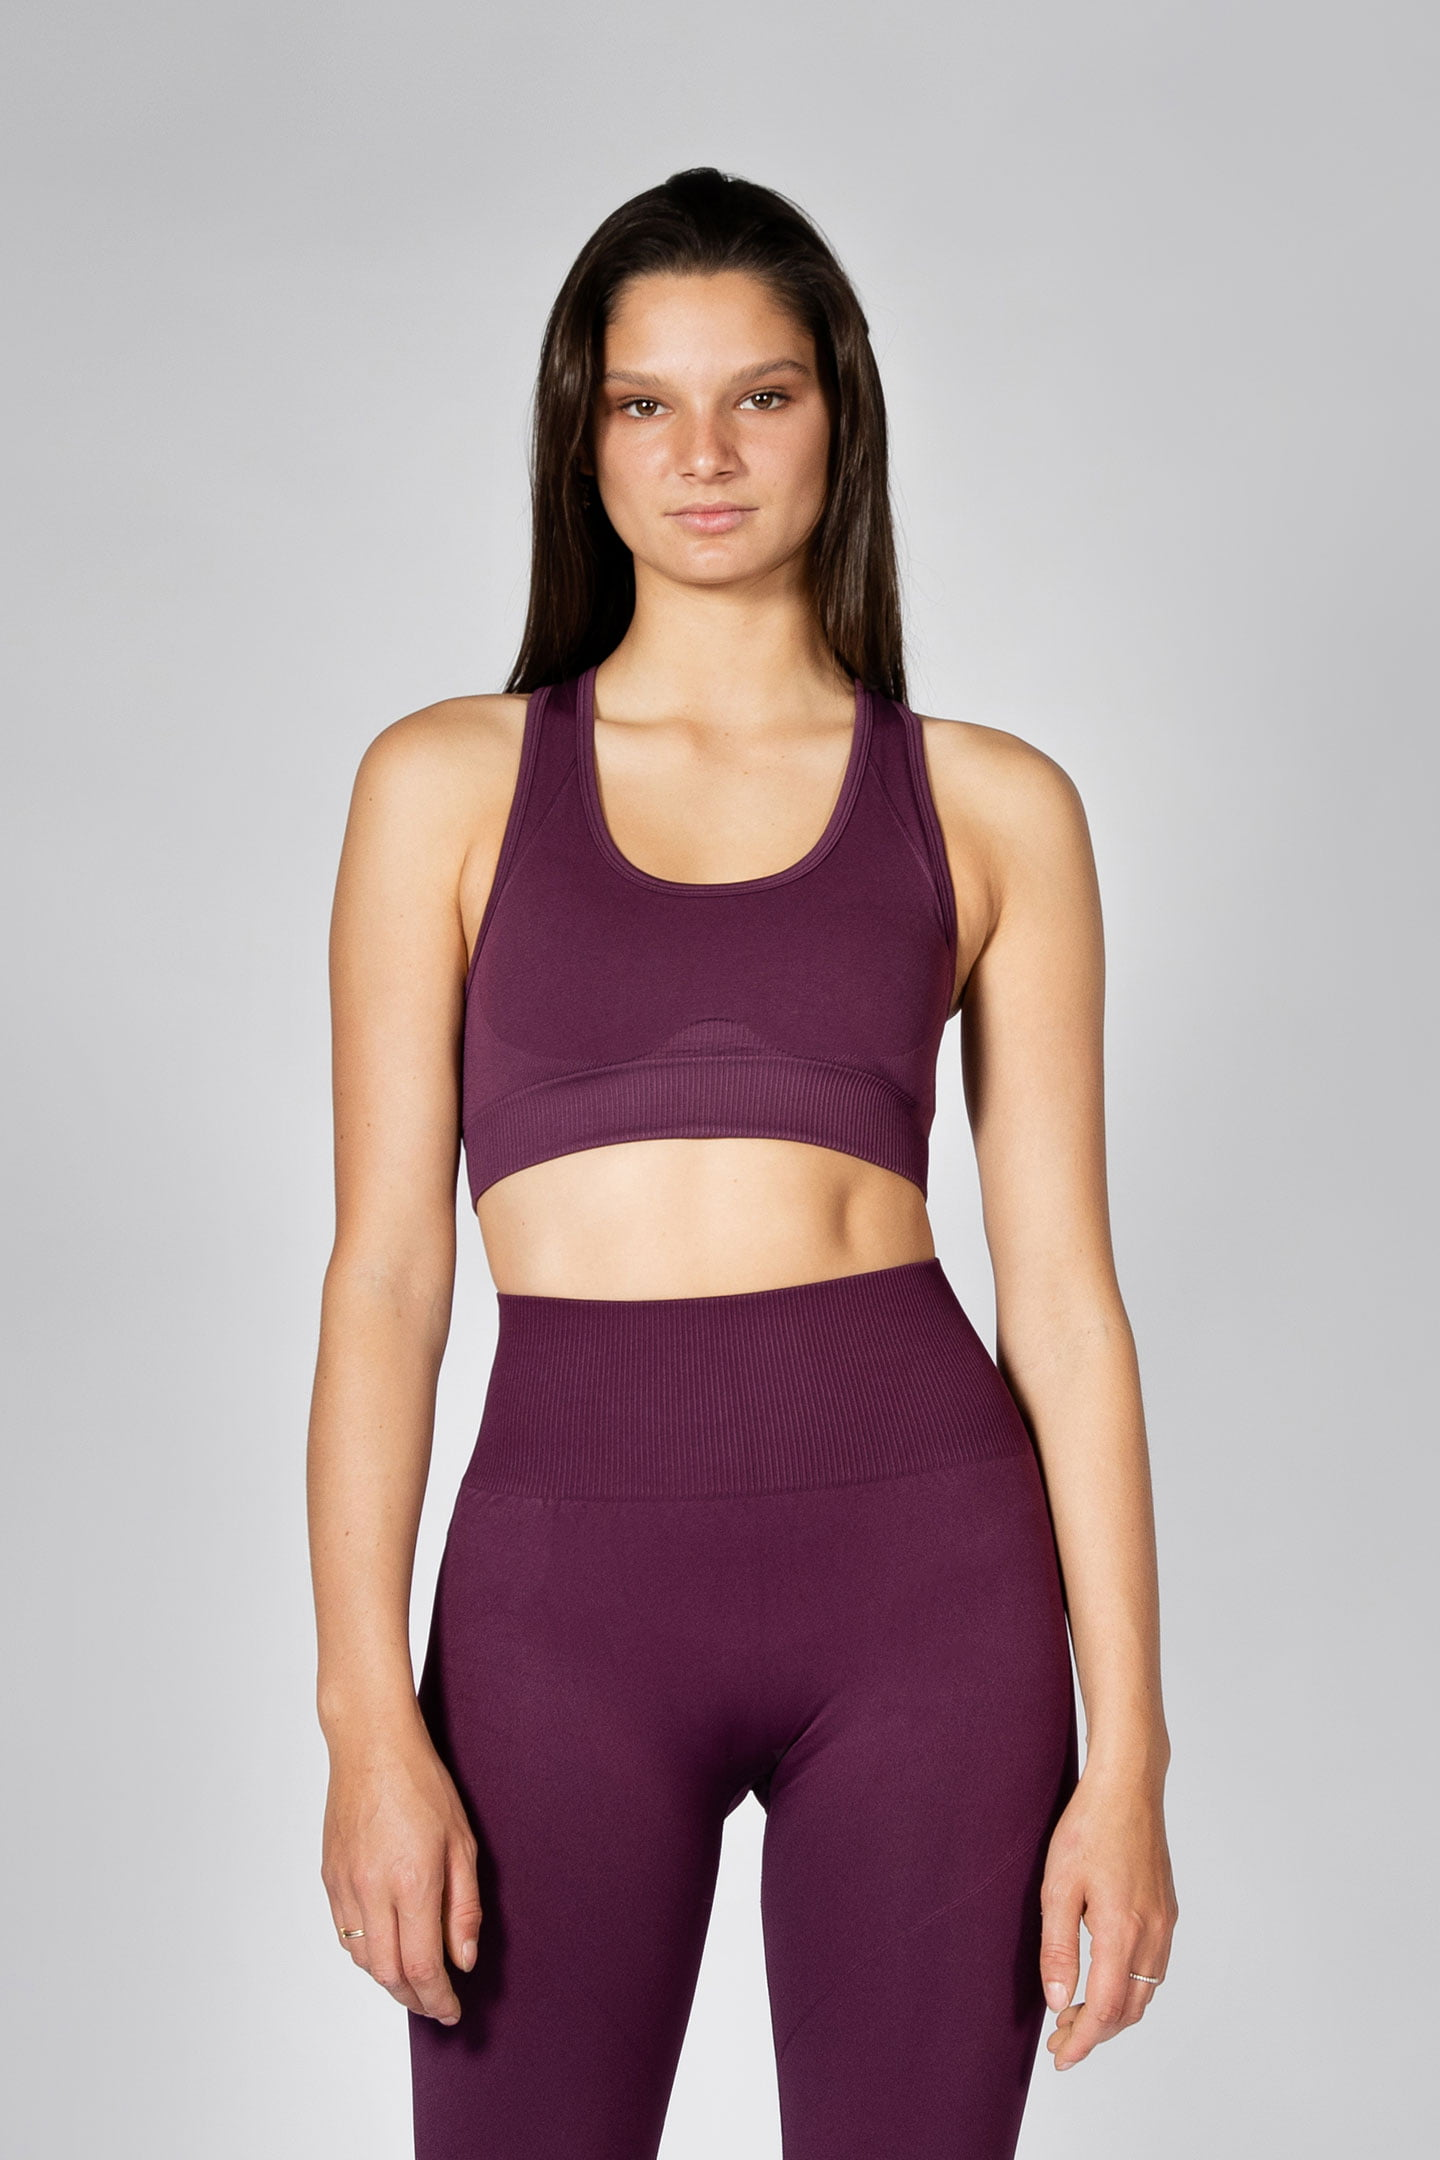 fit model wearing seamless sports bra in grape colour